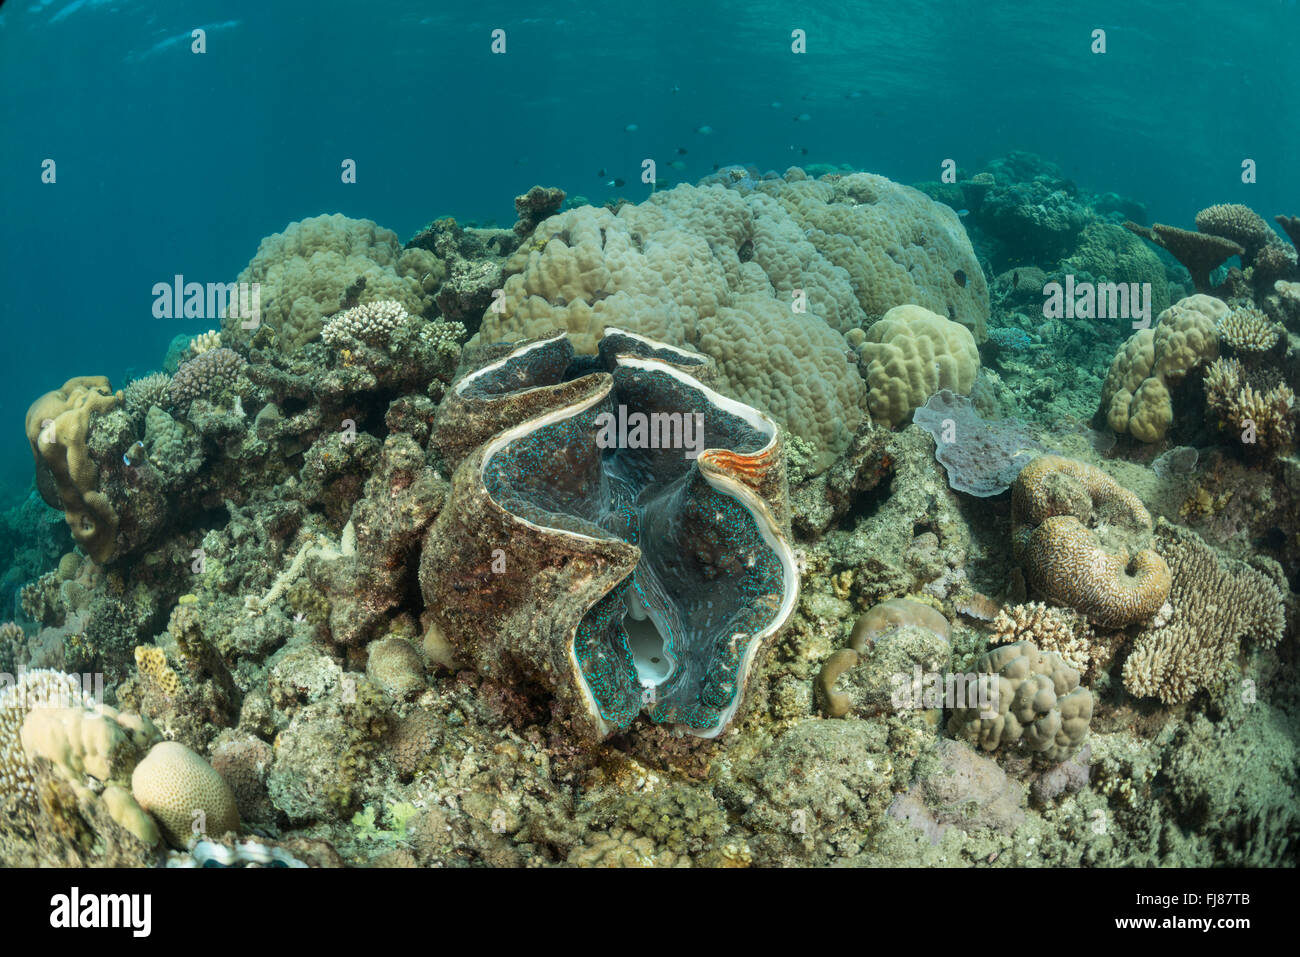 giant clam in coral reef there were very many big healthy